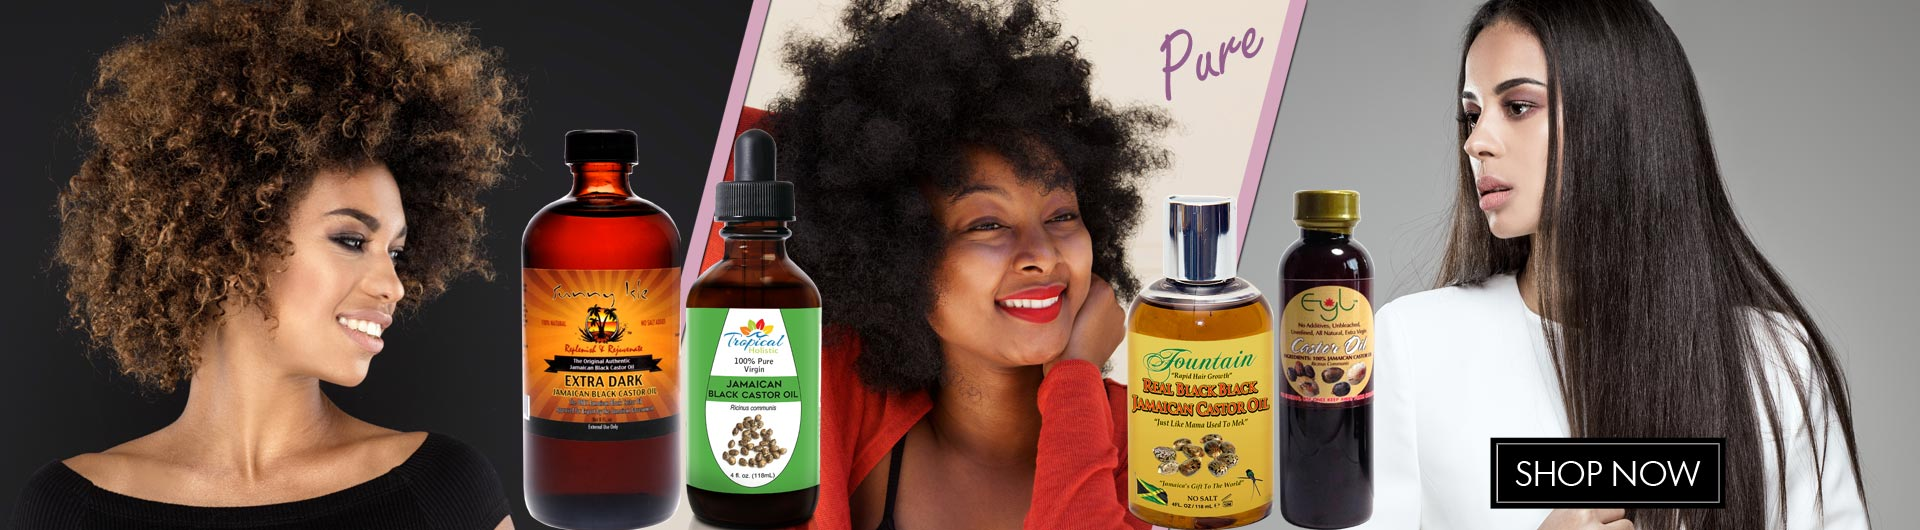 Pure Jamaican Castor Oil